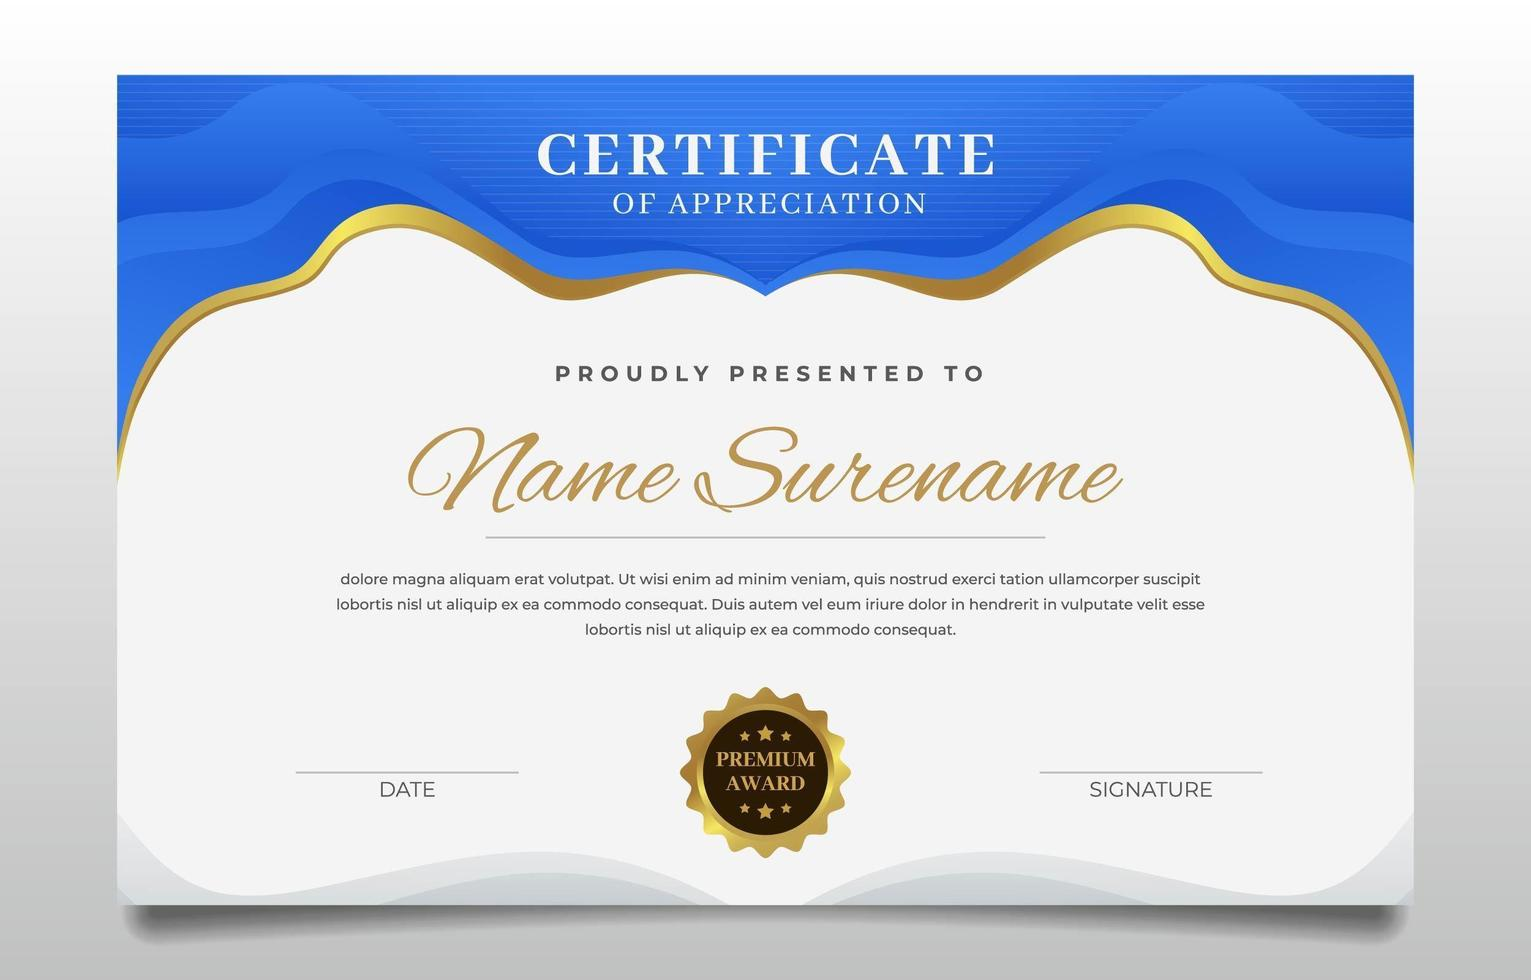 Graduation Certificate A Combination of Blue and Gold vector